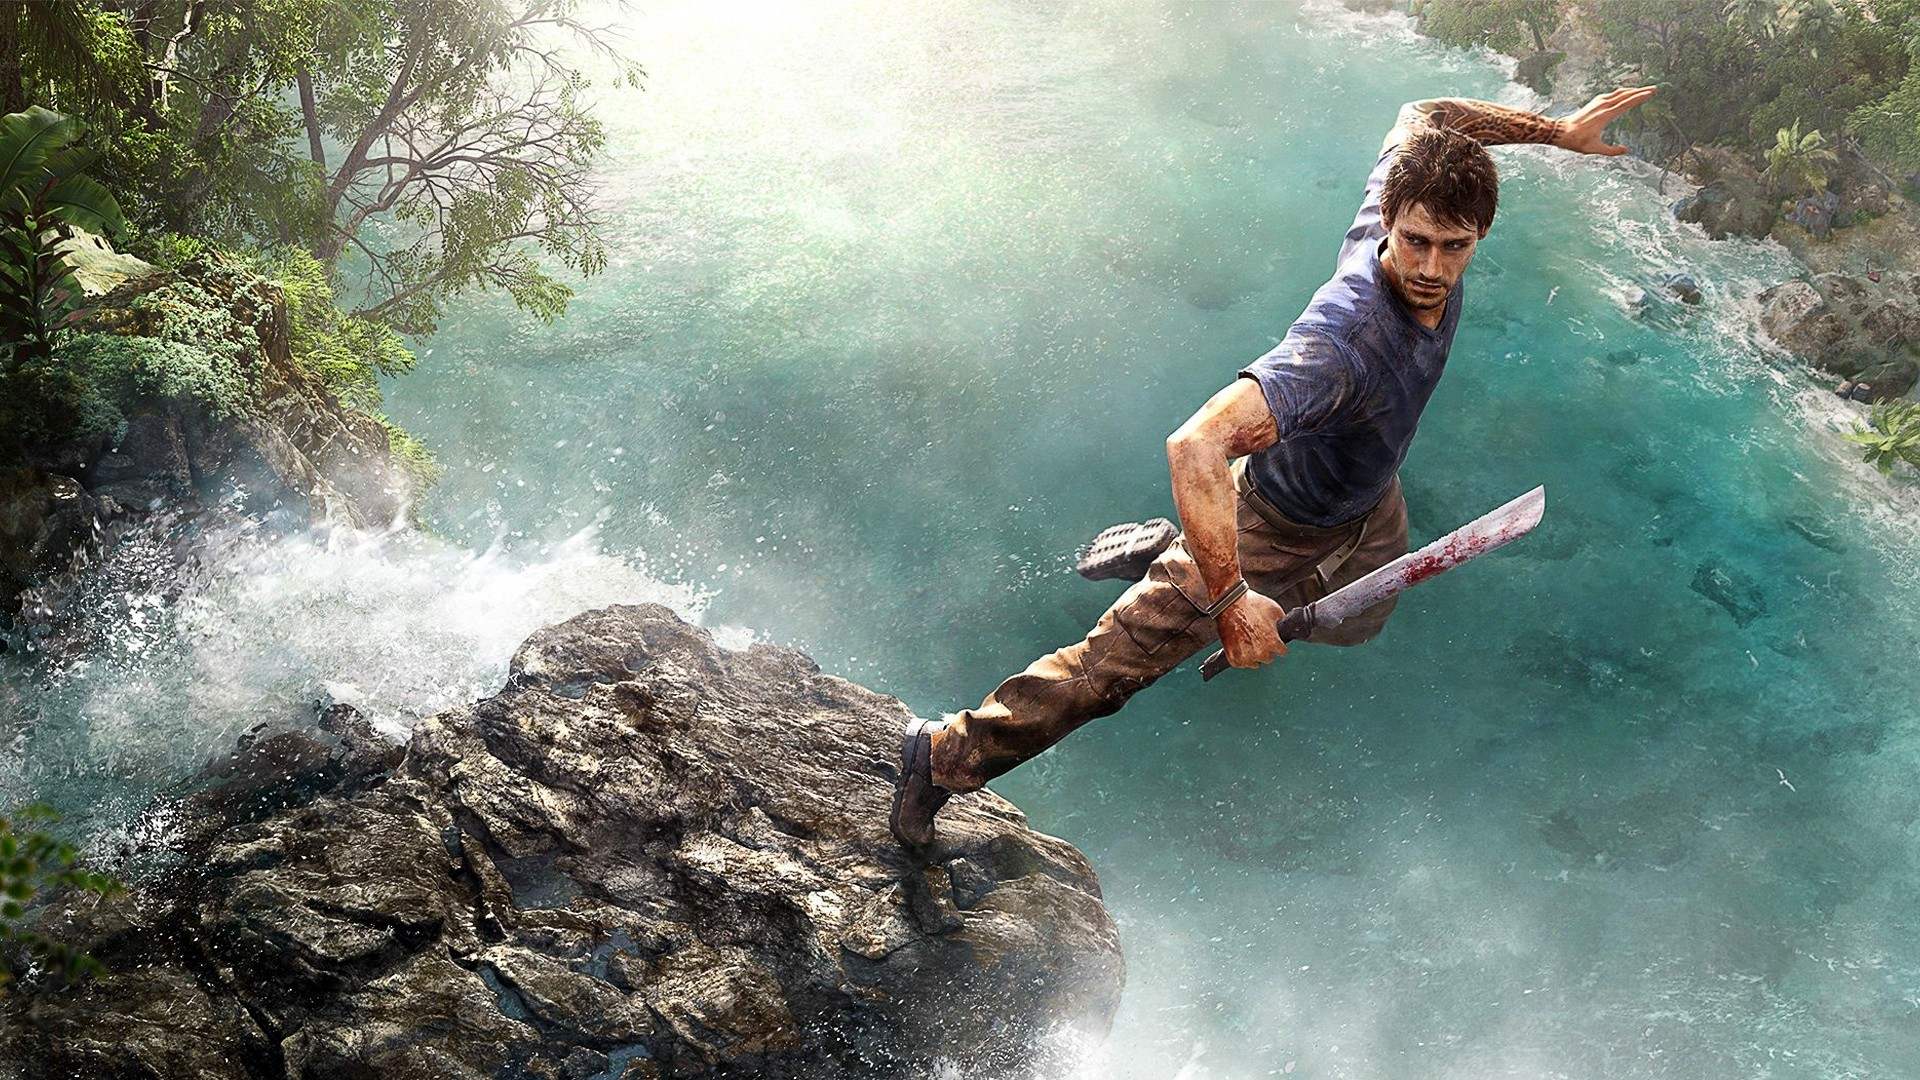 Far Cry 3 Wallpaper 1920x1080 88 Images